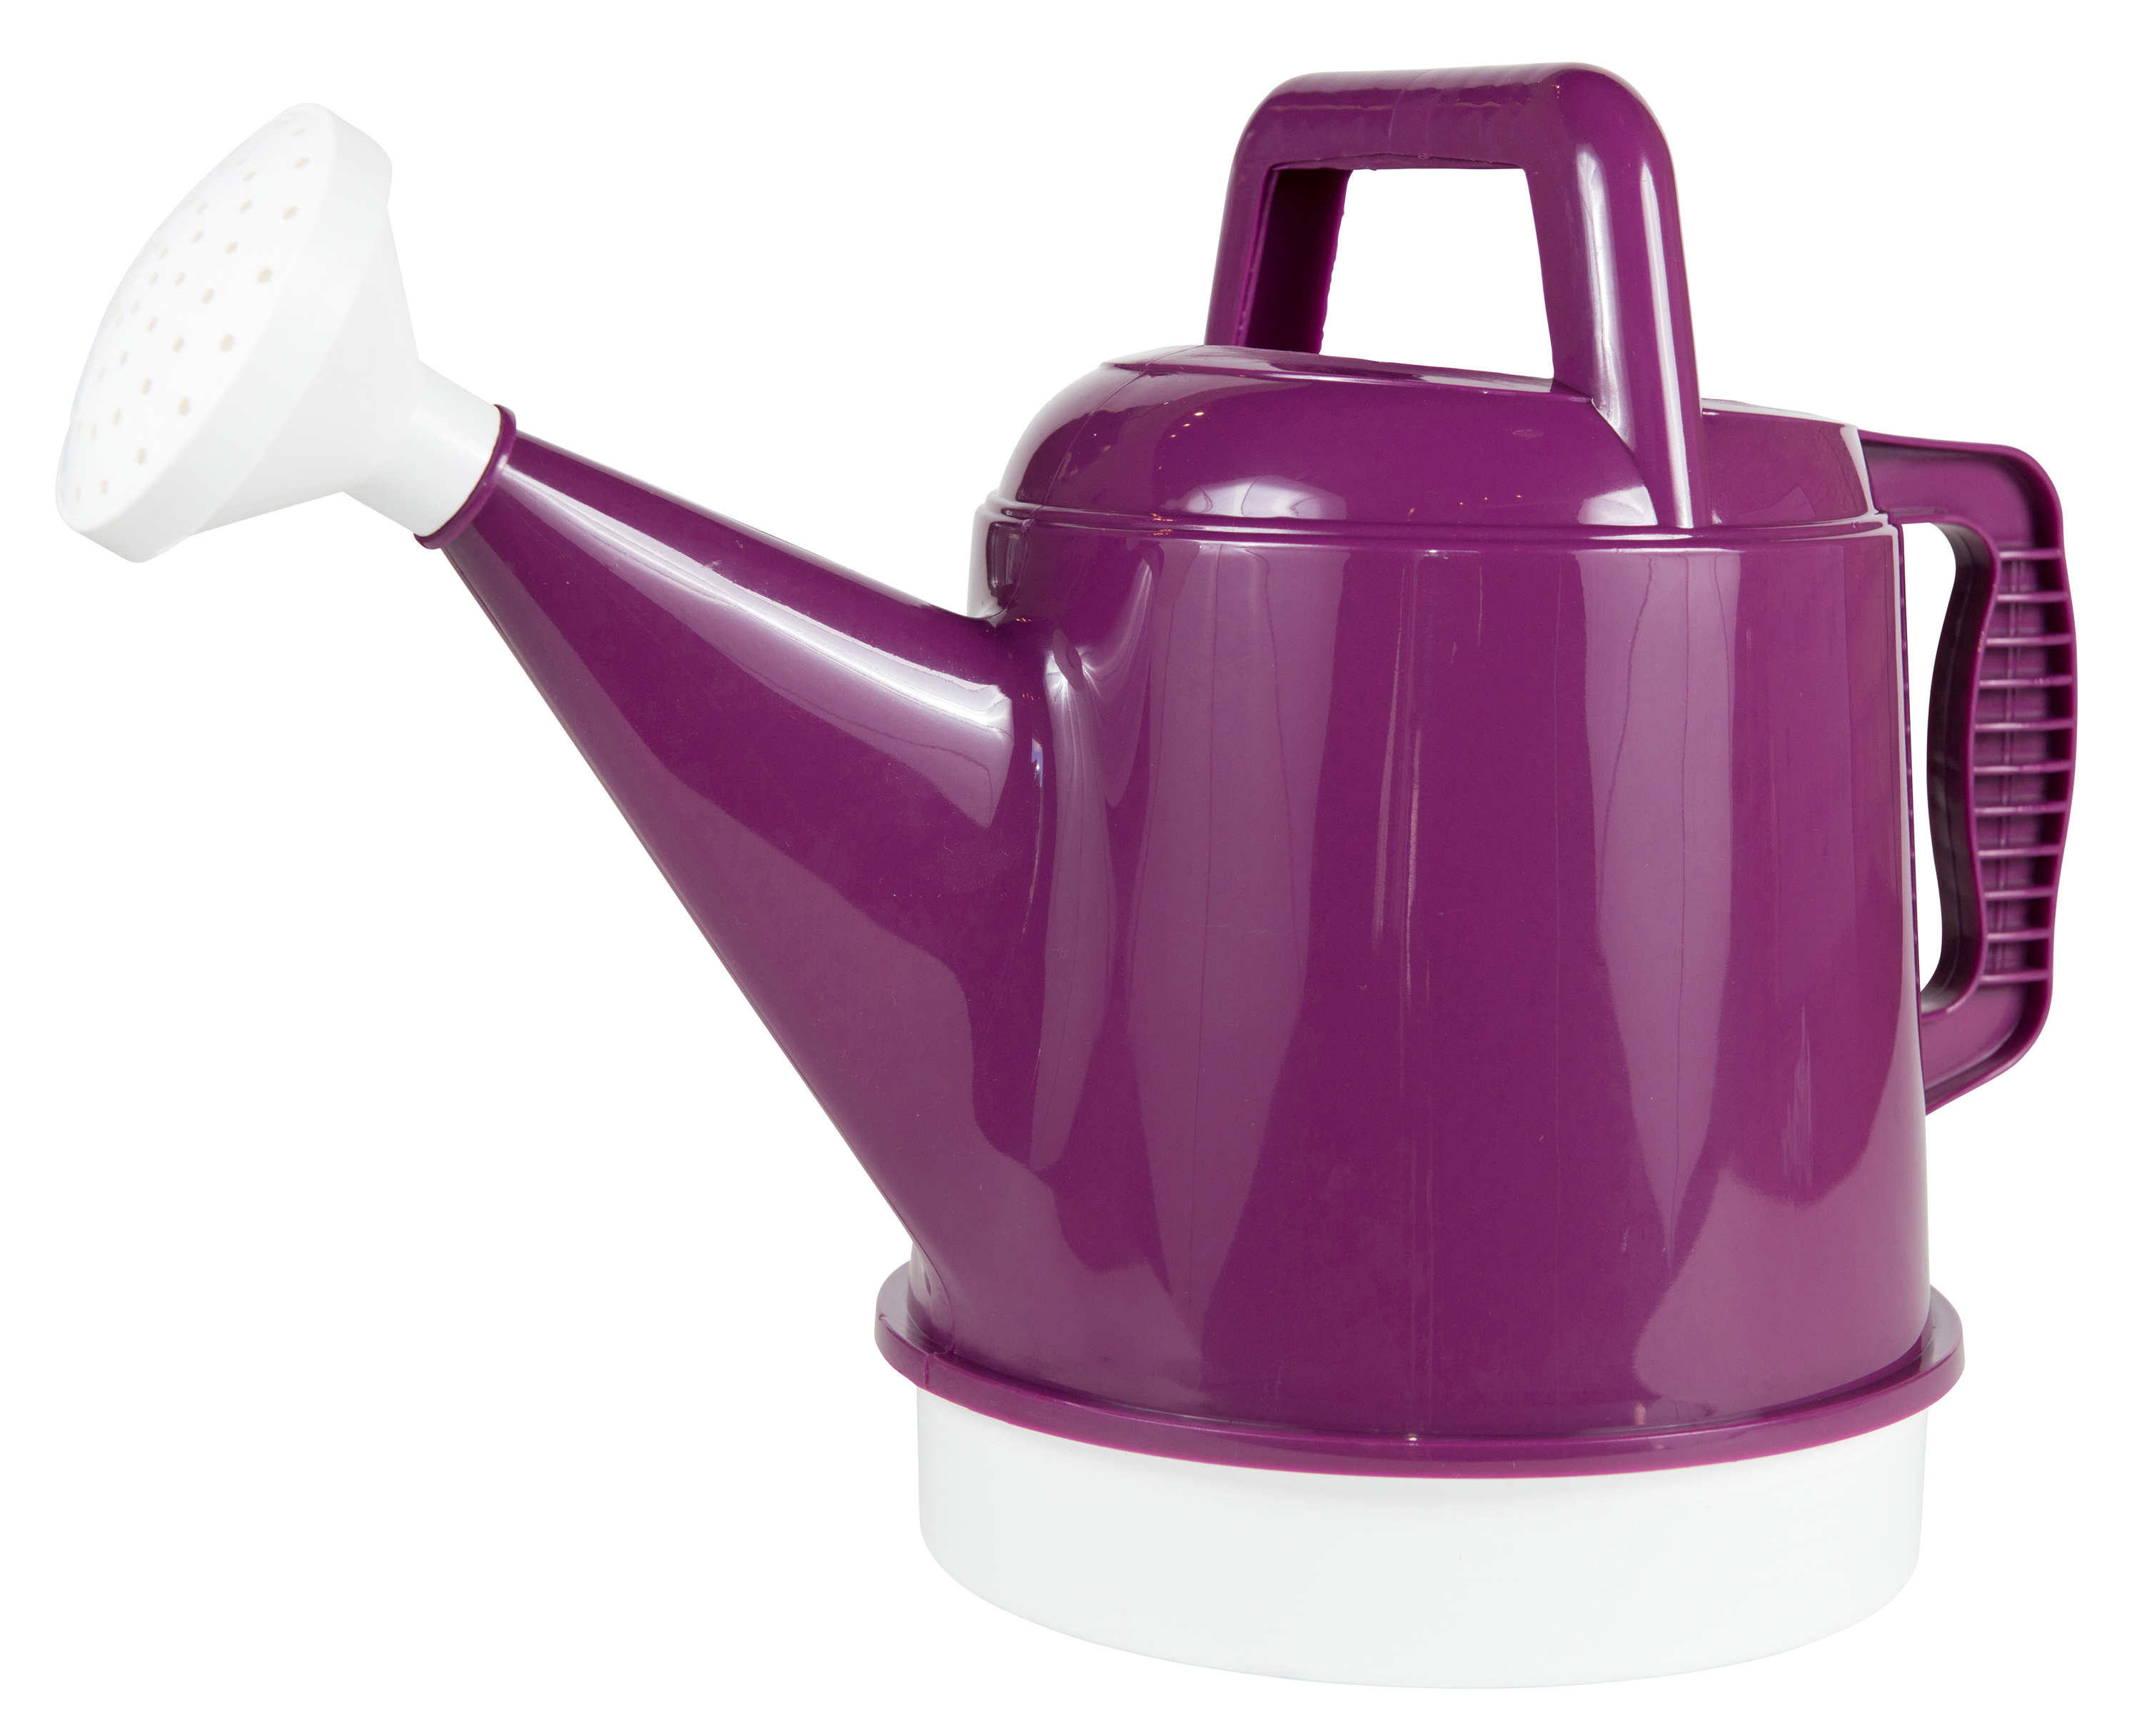 Bloem Deluxe Watering Can 2.5 Gallon Passion Fruit by Bloem